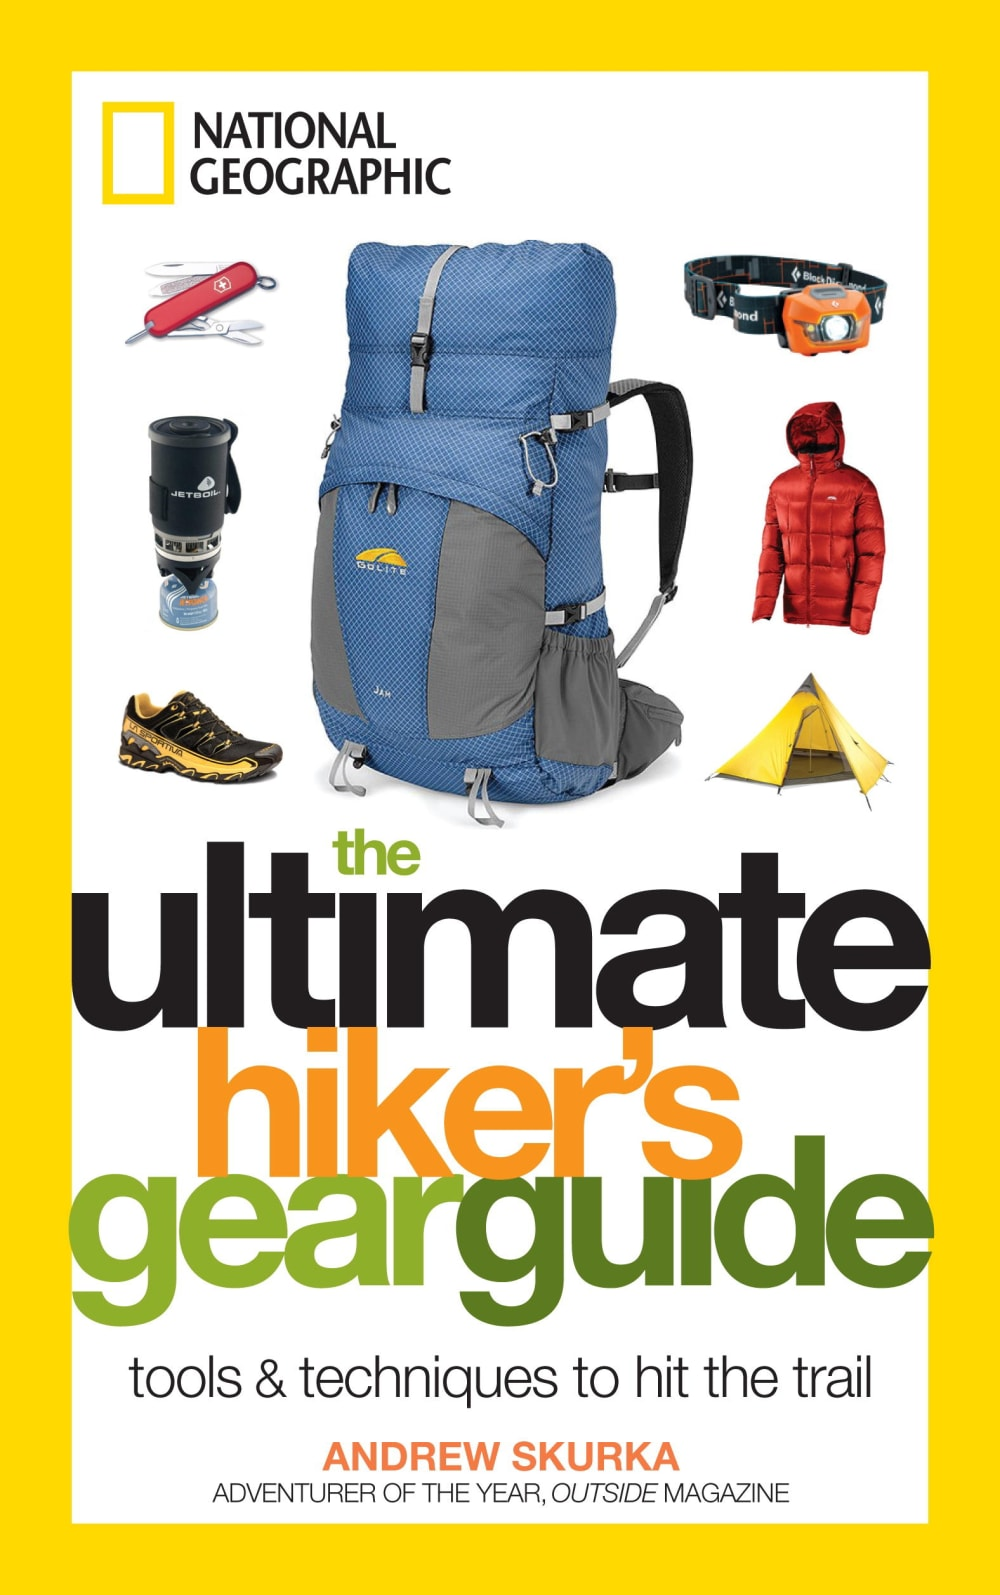 NAT GEO Ultimate Hikers Gear Guide - NONE